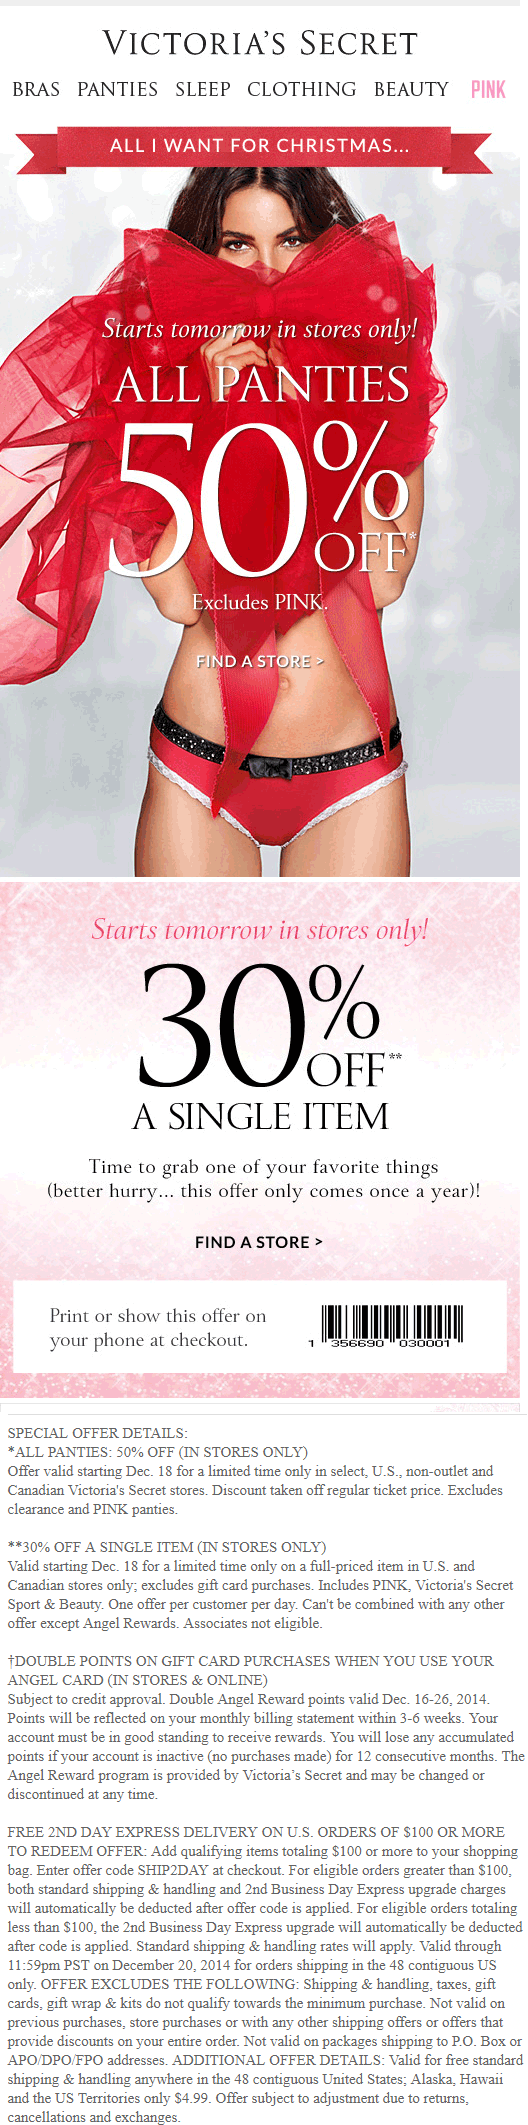 Victorias Secret Coupon January 2017 30% off a single item at Victorias Secret